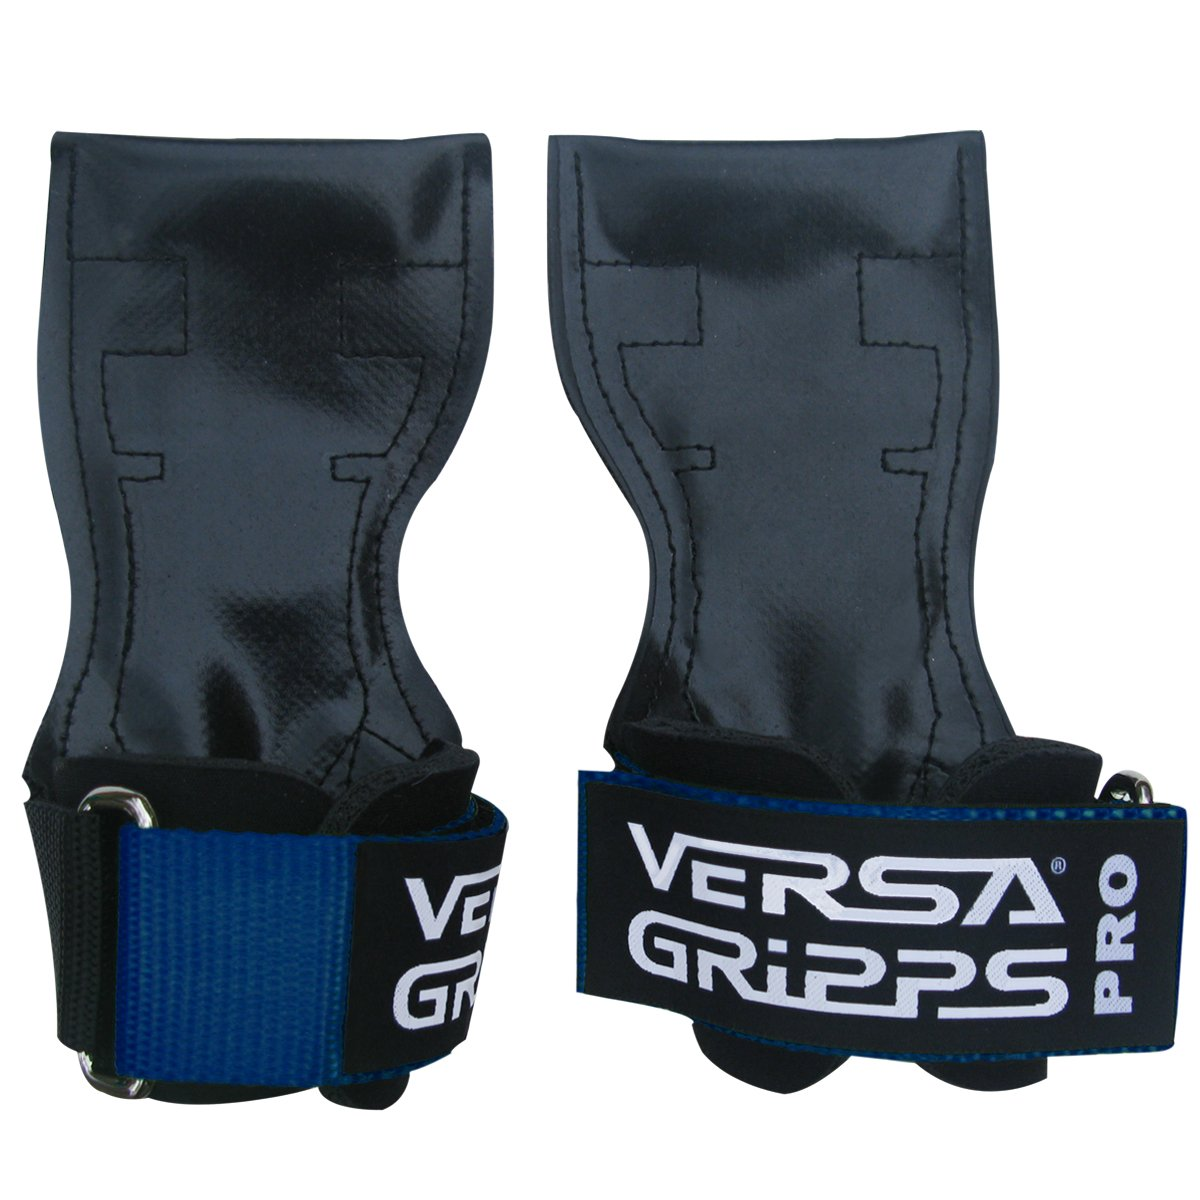 Versa Gripps PRO Authentic. The Best Training Accessory in the World. MADE IN THE USA (SM-Blue)